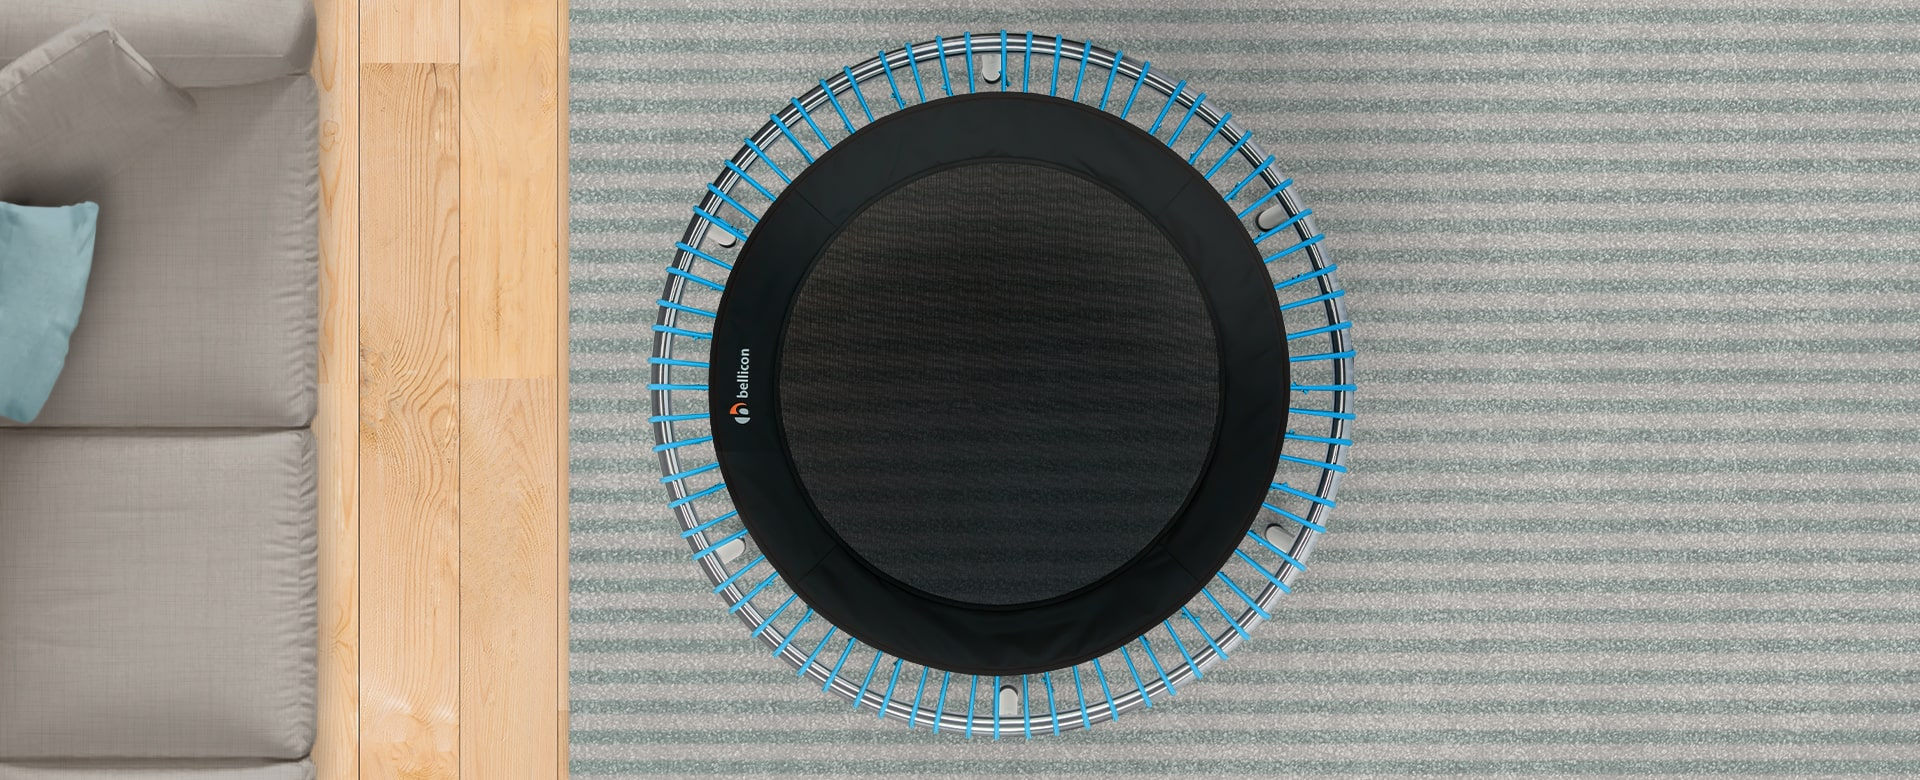 mini trampoline blue